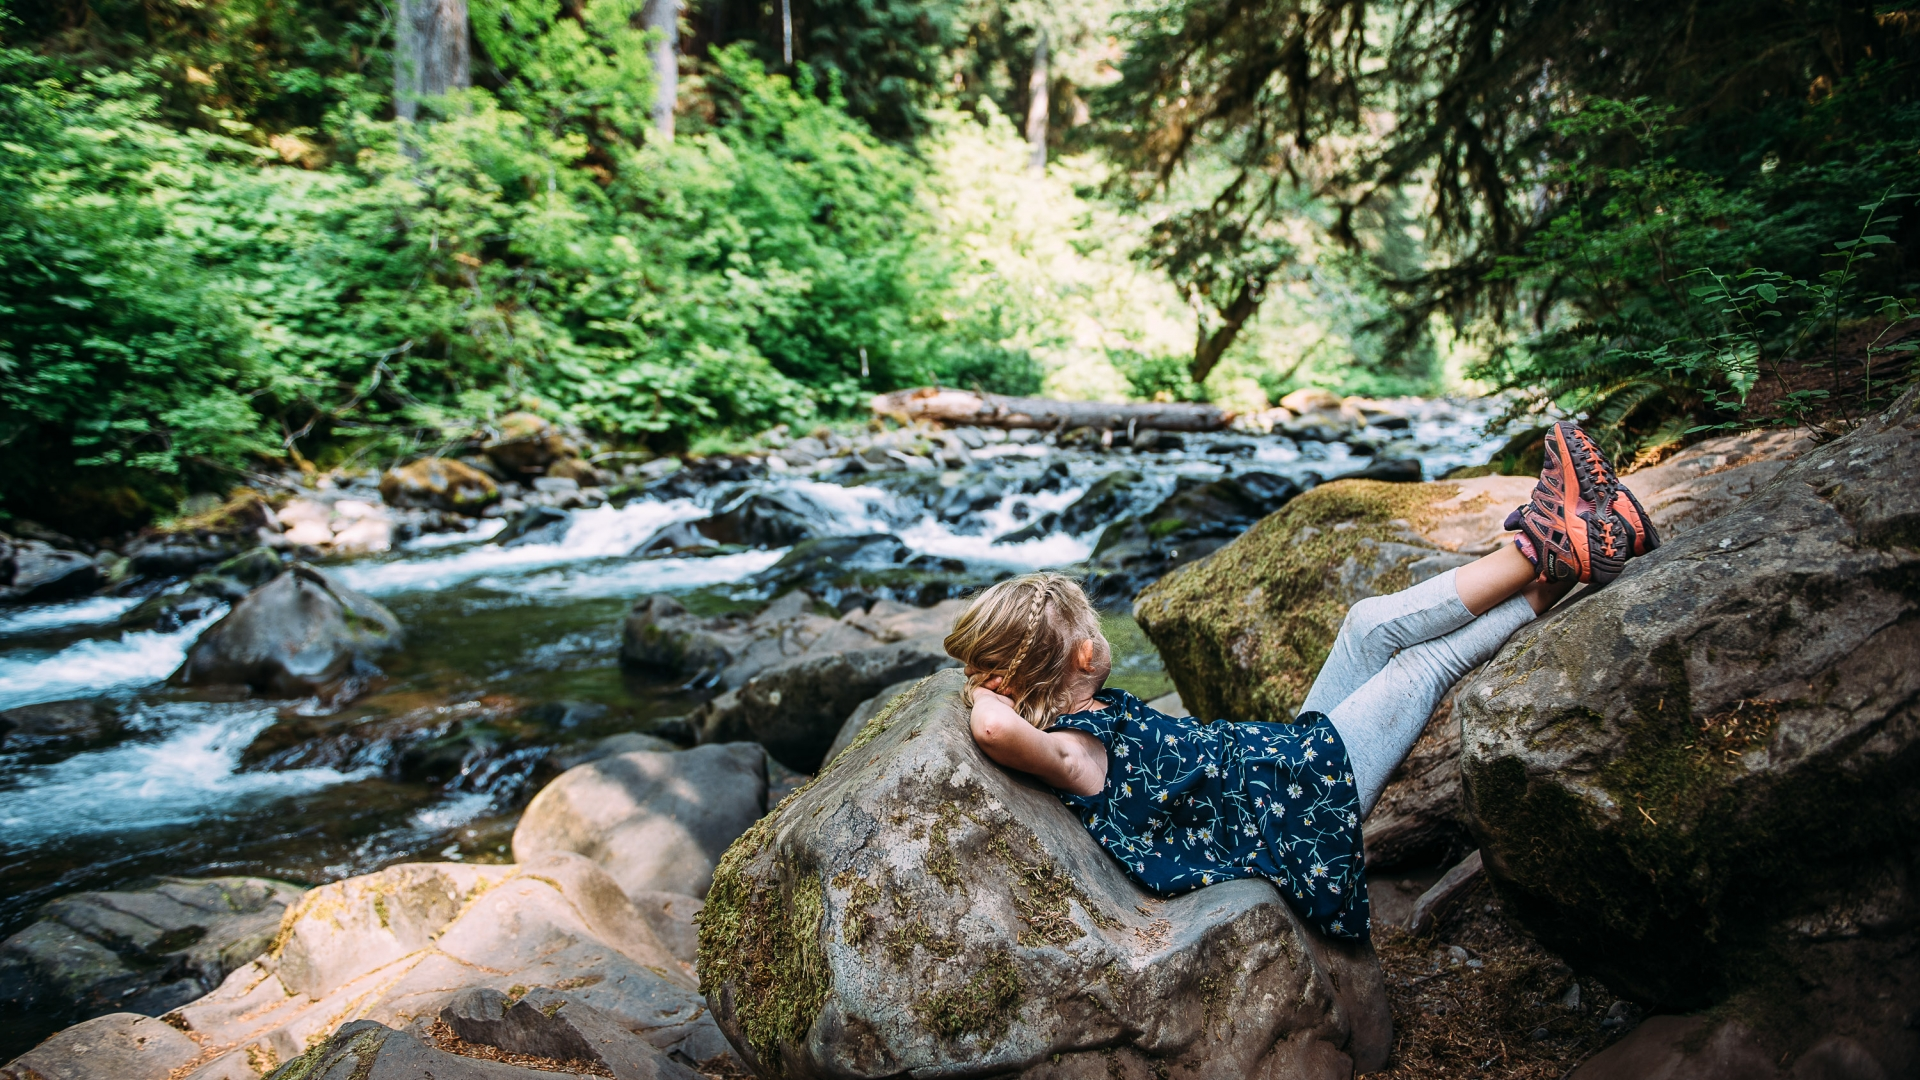 Olympic National Park contest image by Ashley Kerkemeyer